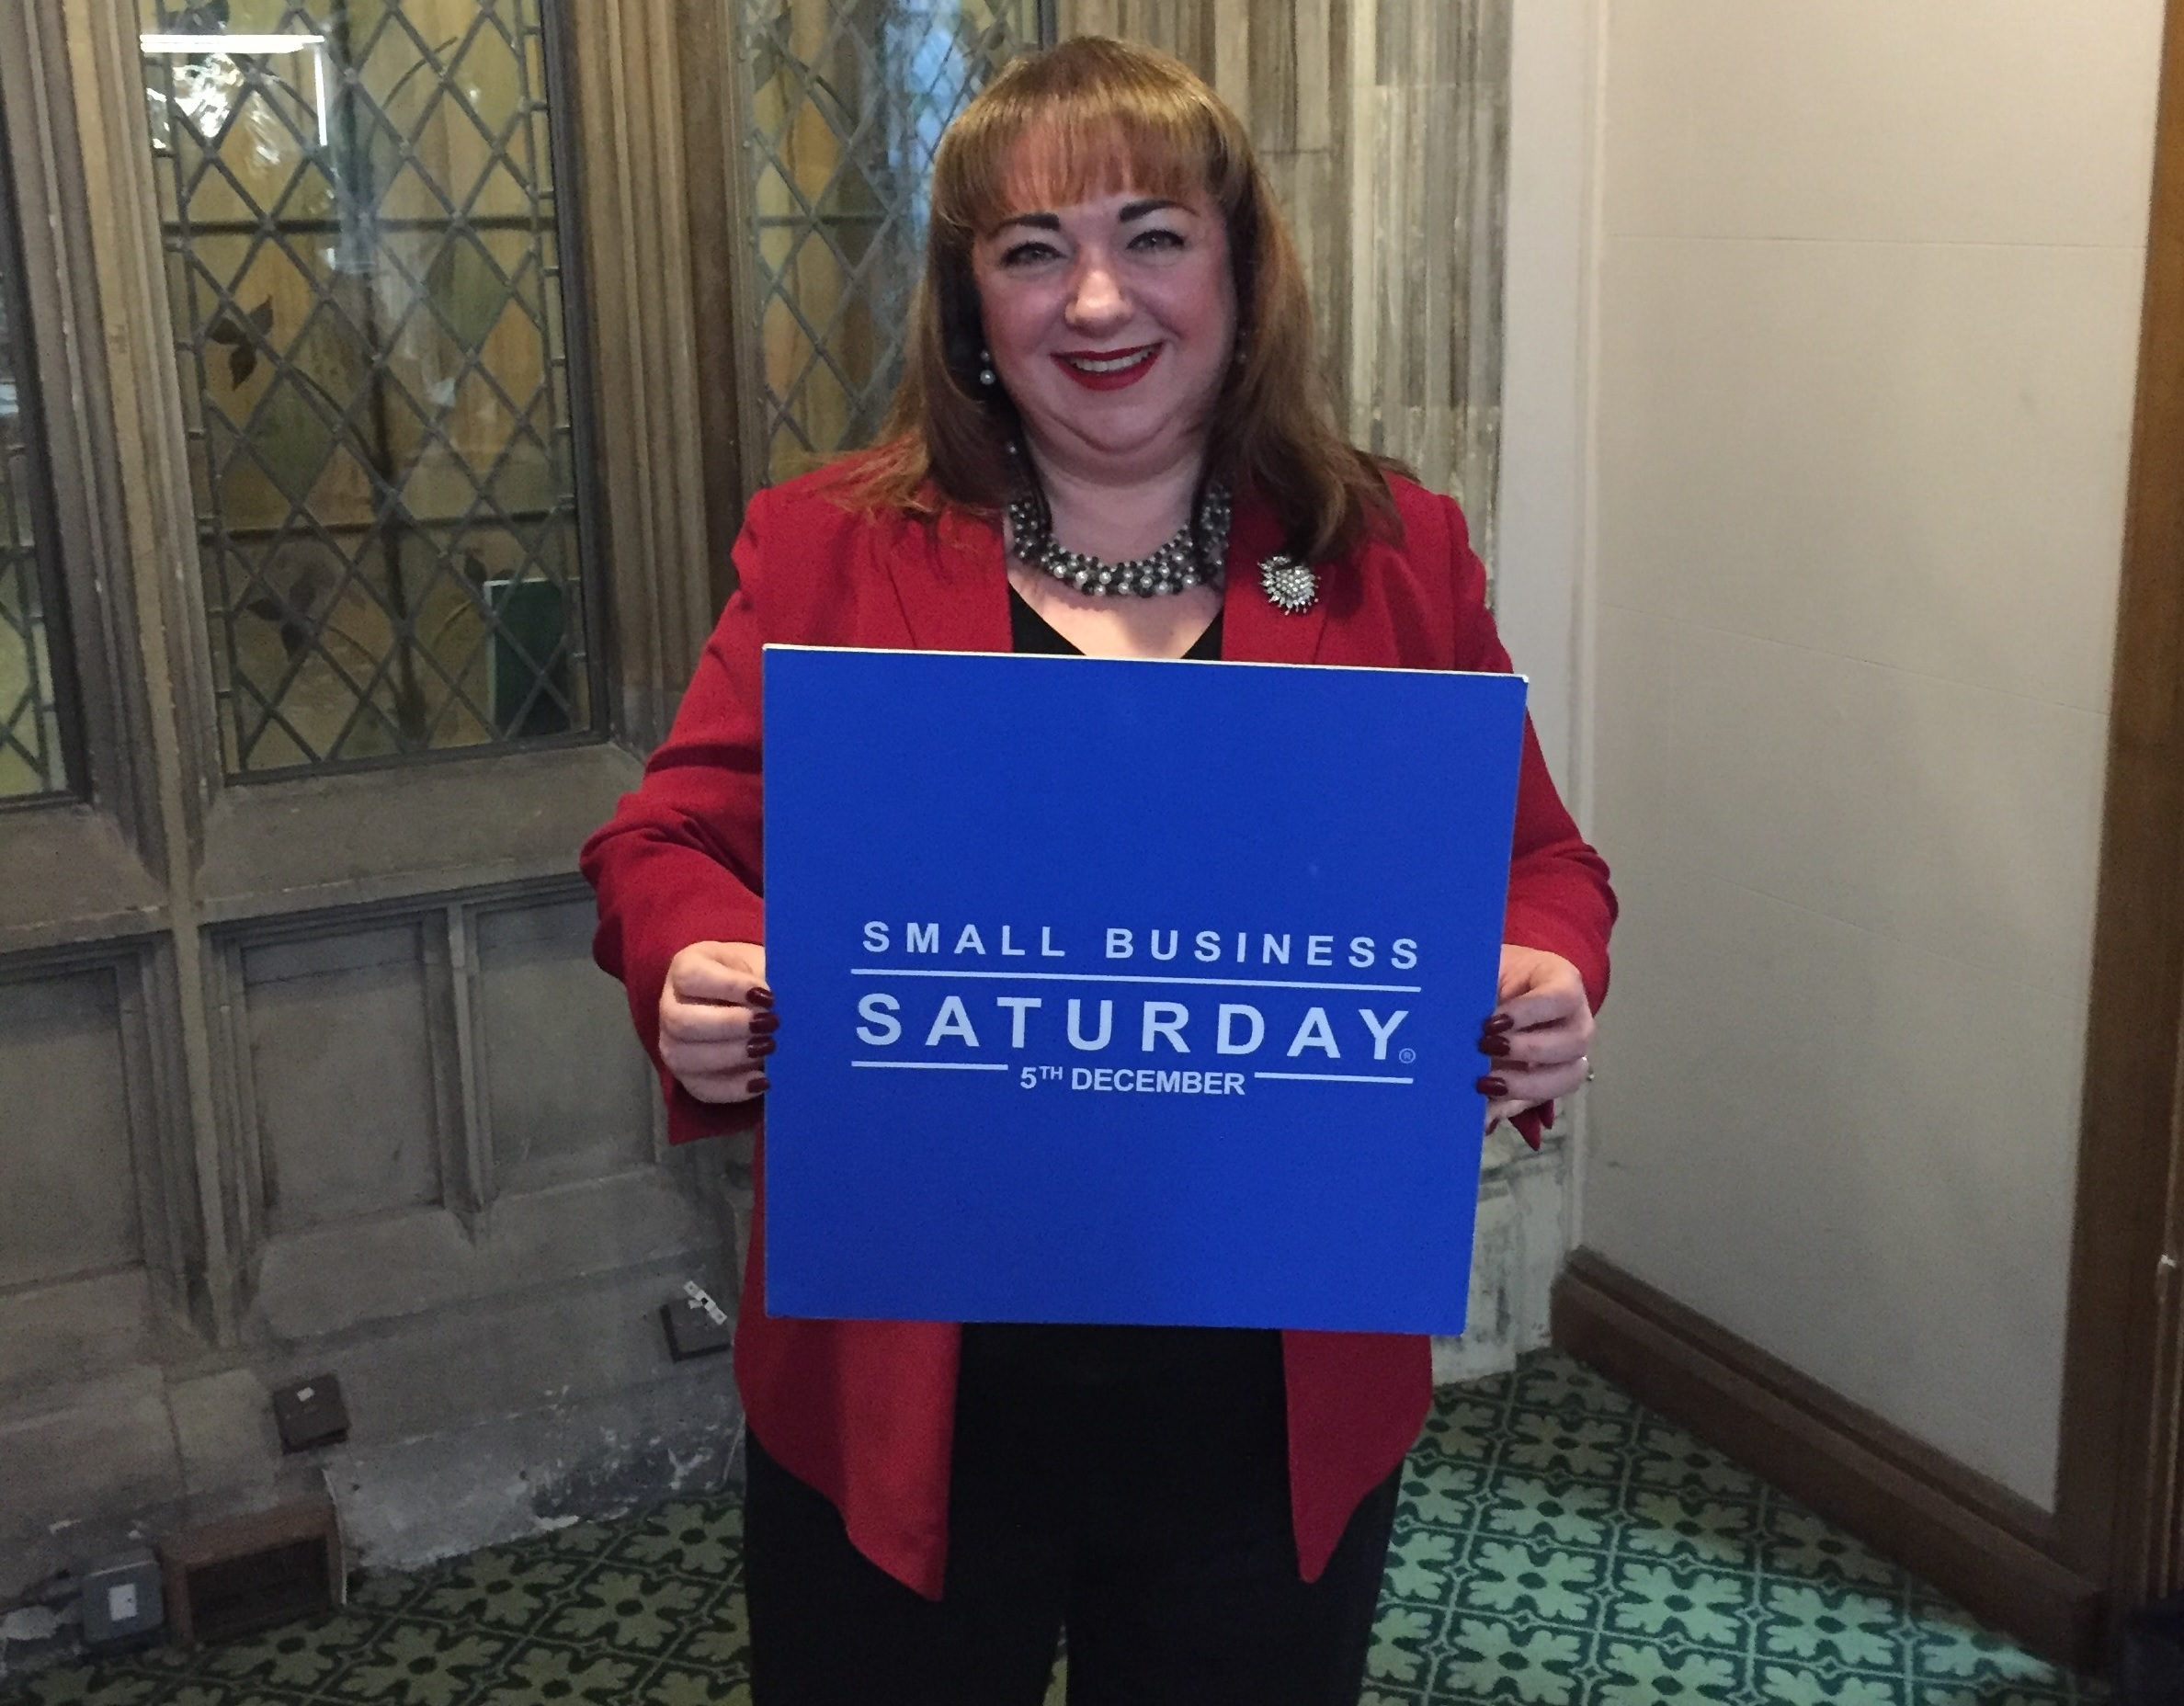 Sharon_and_Small_Business_Saturday_4.jpg